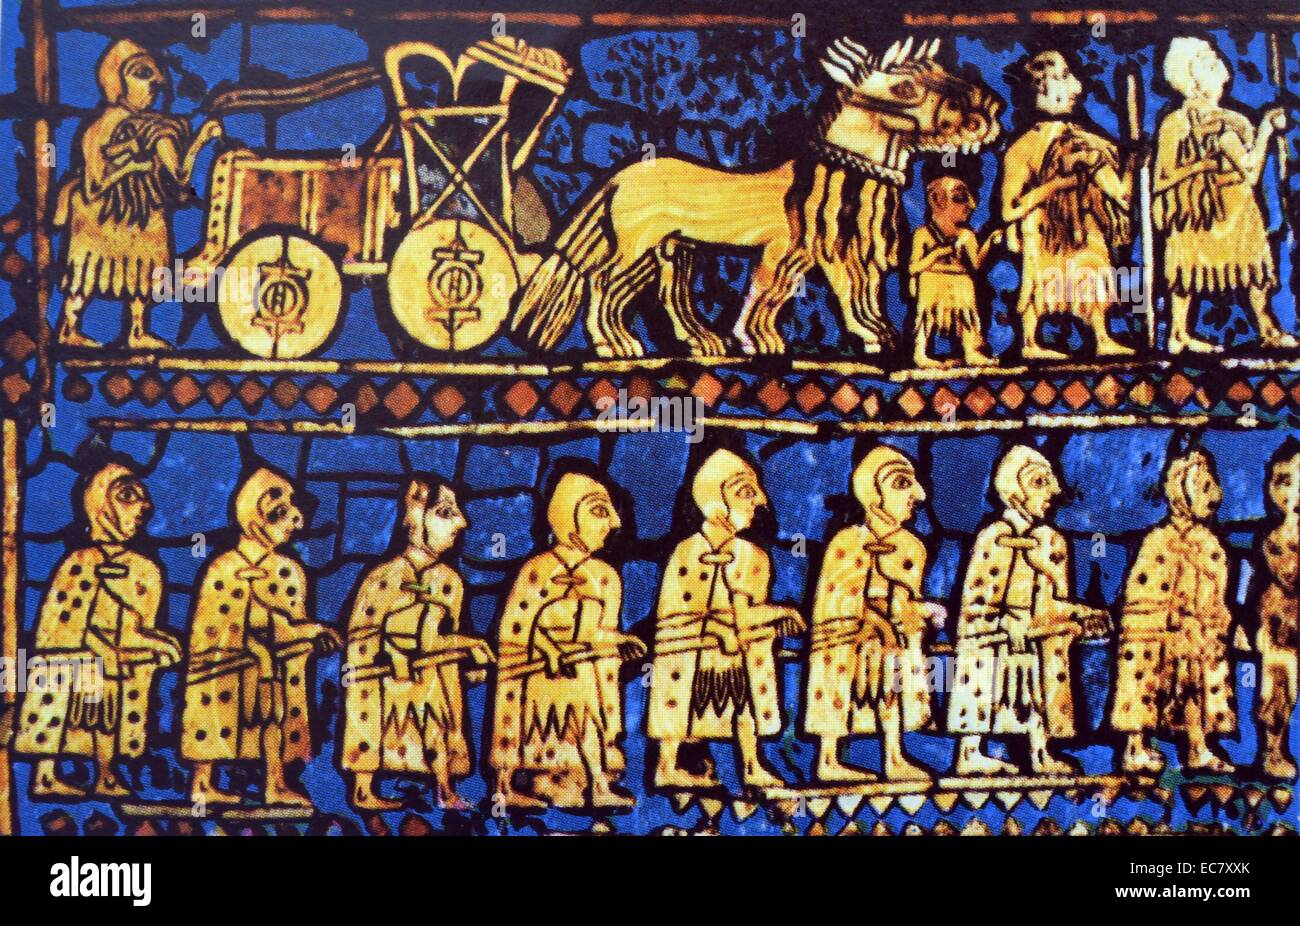 War.  Detail from the Standard of Ur, Sumerian, 2750-2650BC. - Stock Image